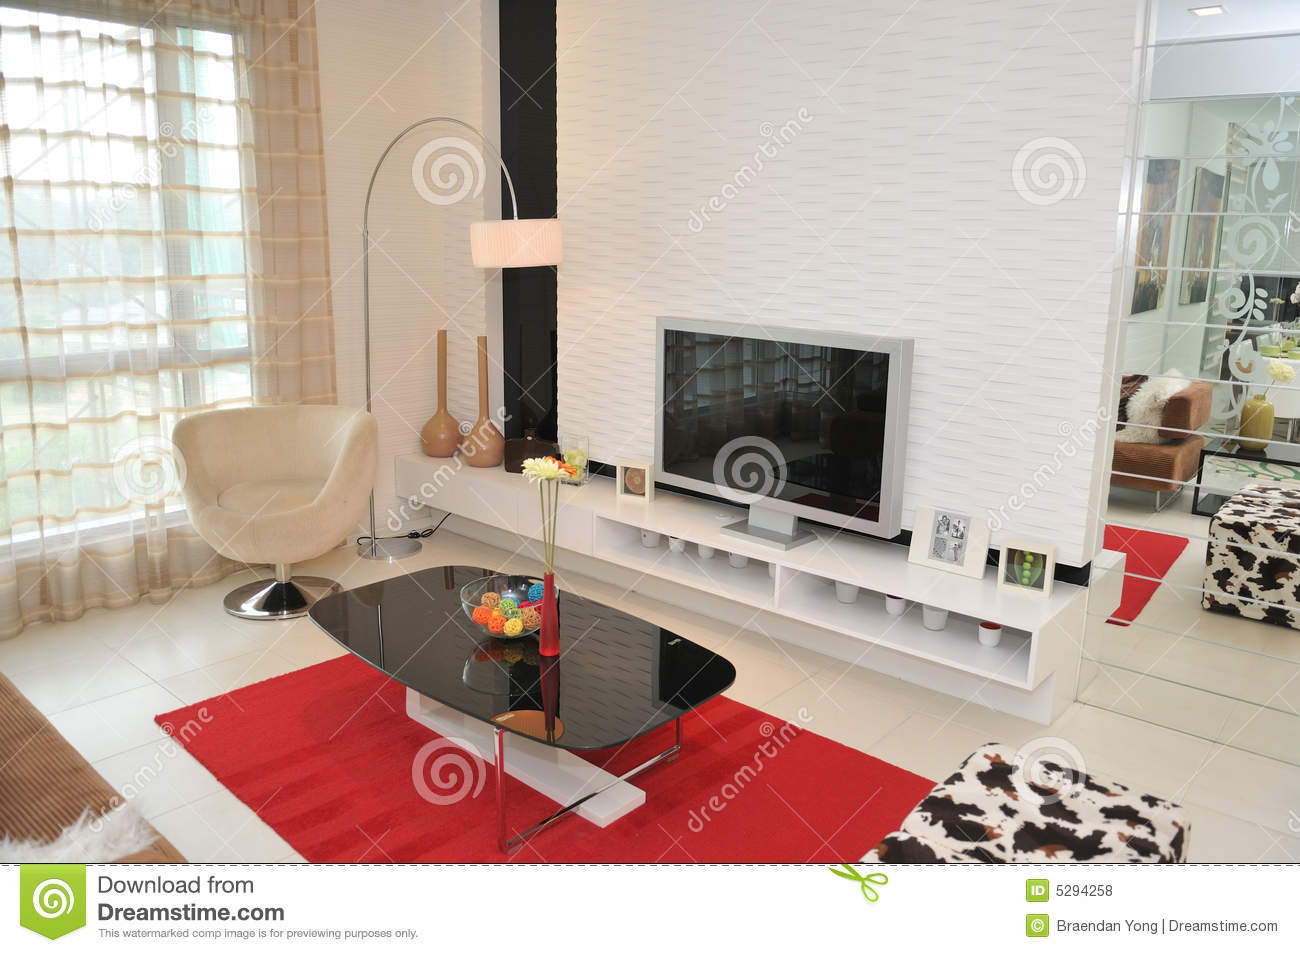 Interior decoration series 9 royalty free stock photos for Teng yong interior design decoration